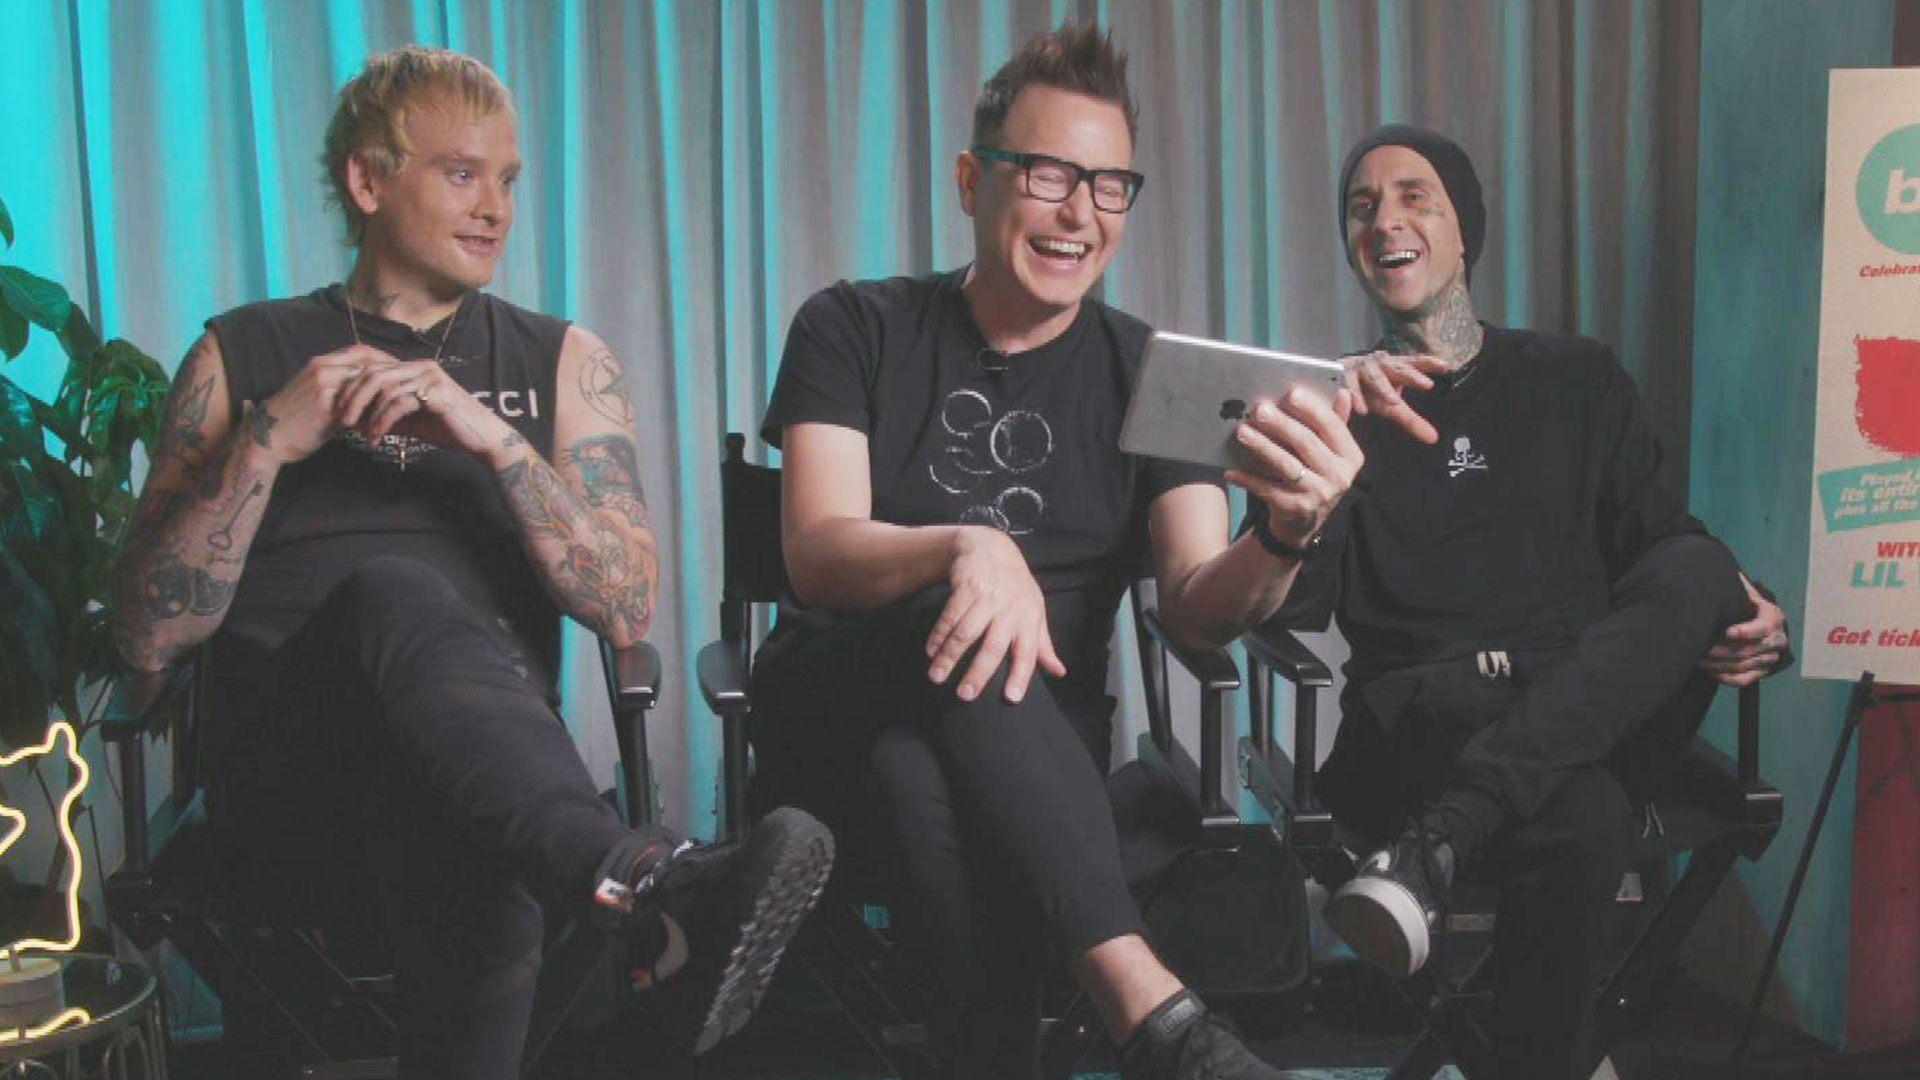 Blink-182 Reacts to Their Best 'Enema of the State' Videos 20 Years